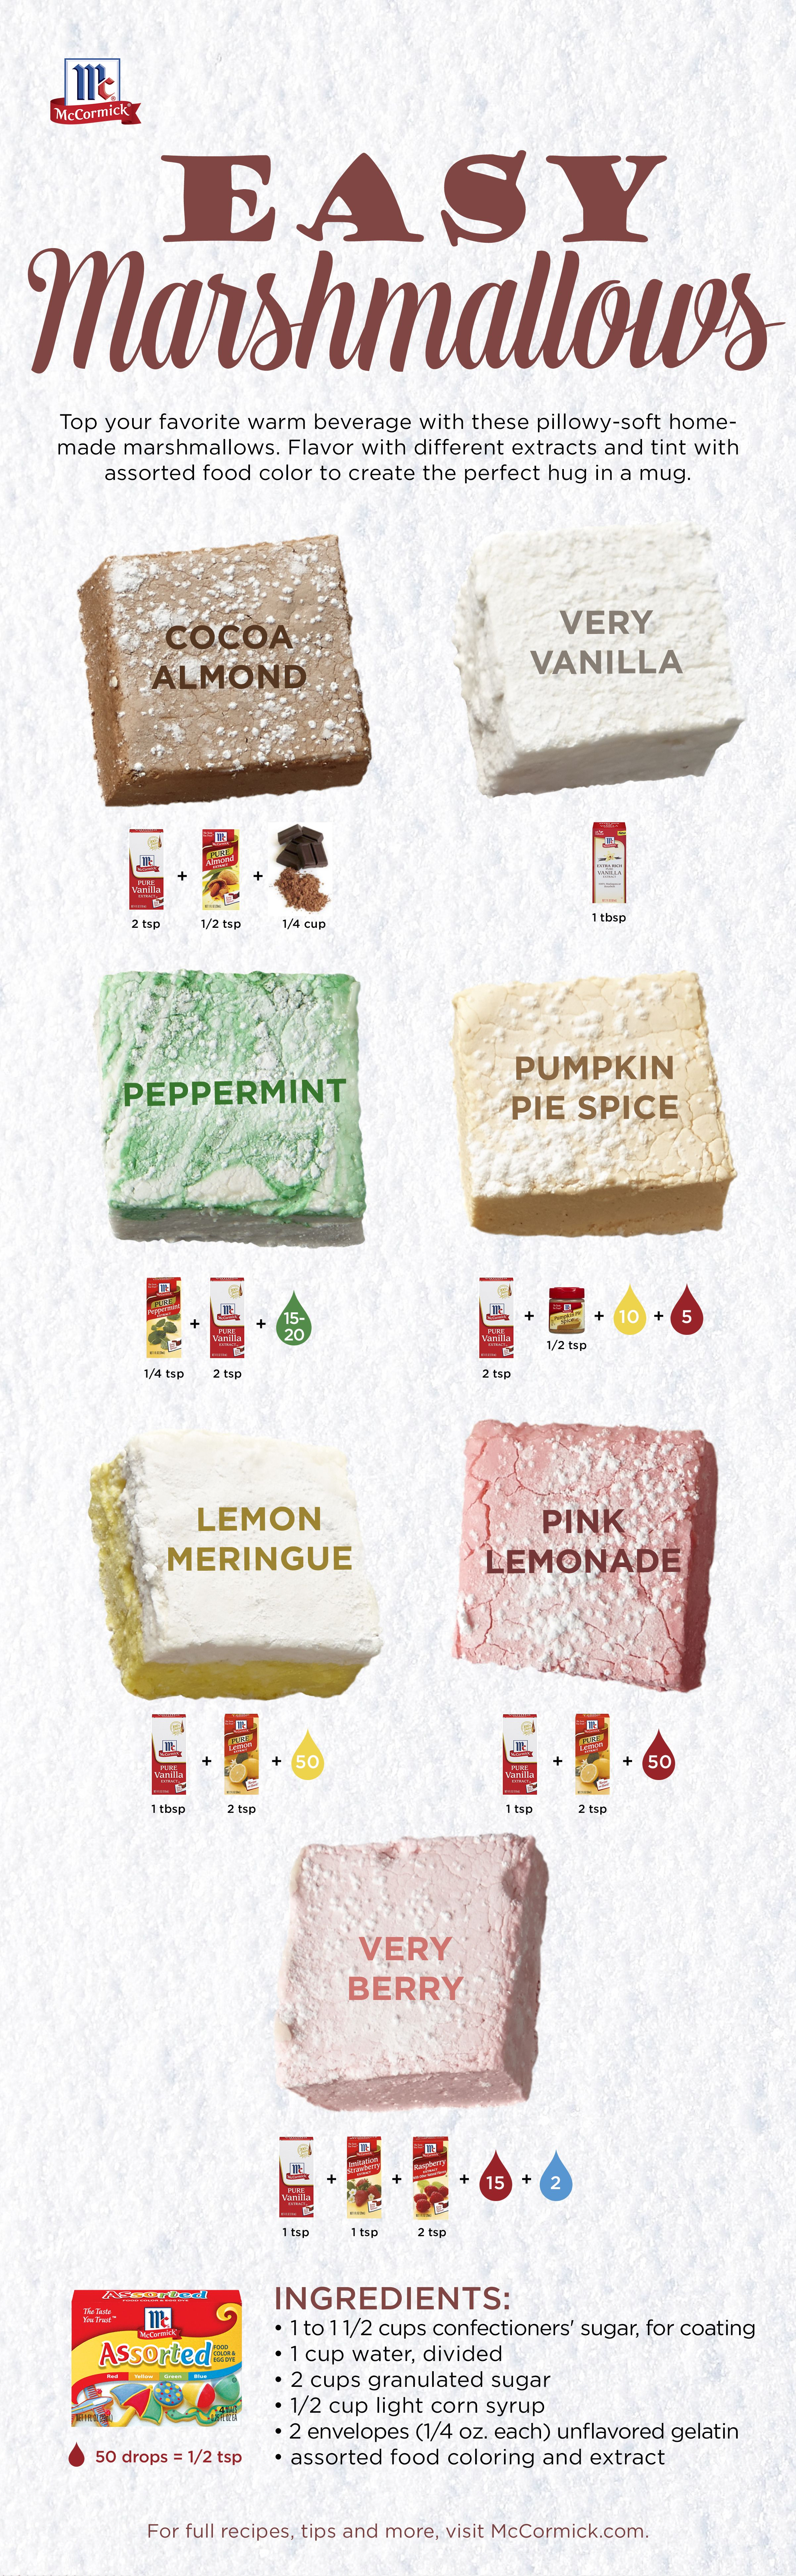 Take your favorite warm drink or dessert to the next level by topping with homemade marshmallows. Use extracts and food color to create flavors from cocoa almond and peppermint to pink lemonade!